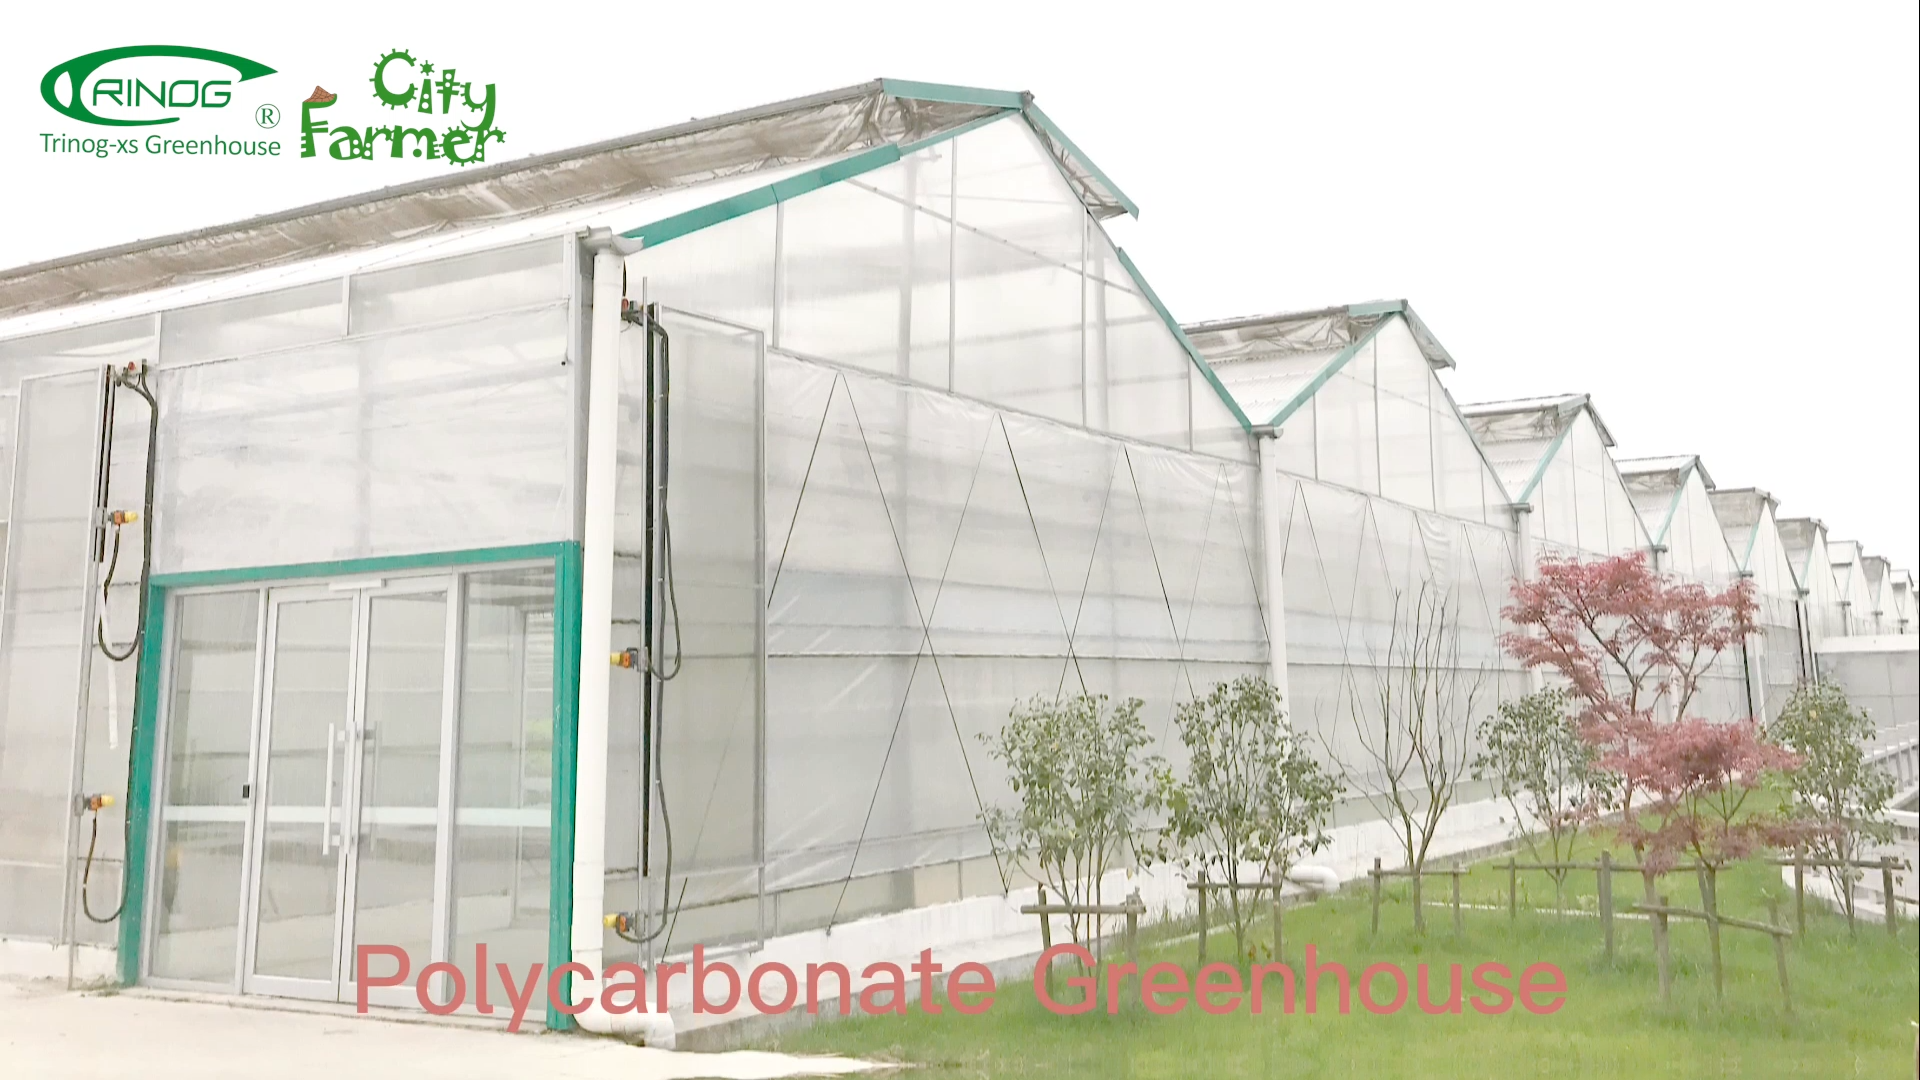 Trinog Sun Shade  Aluminum farme Polycarbonate greenhouses for farm